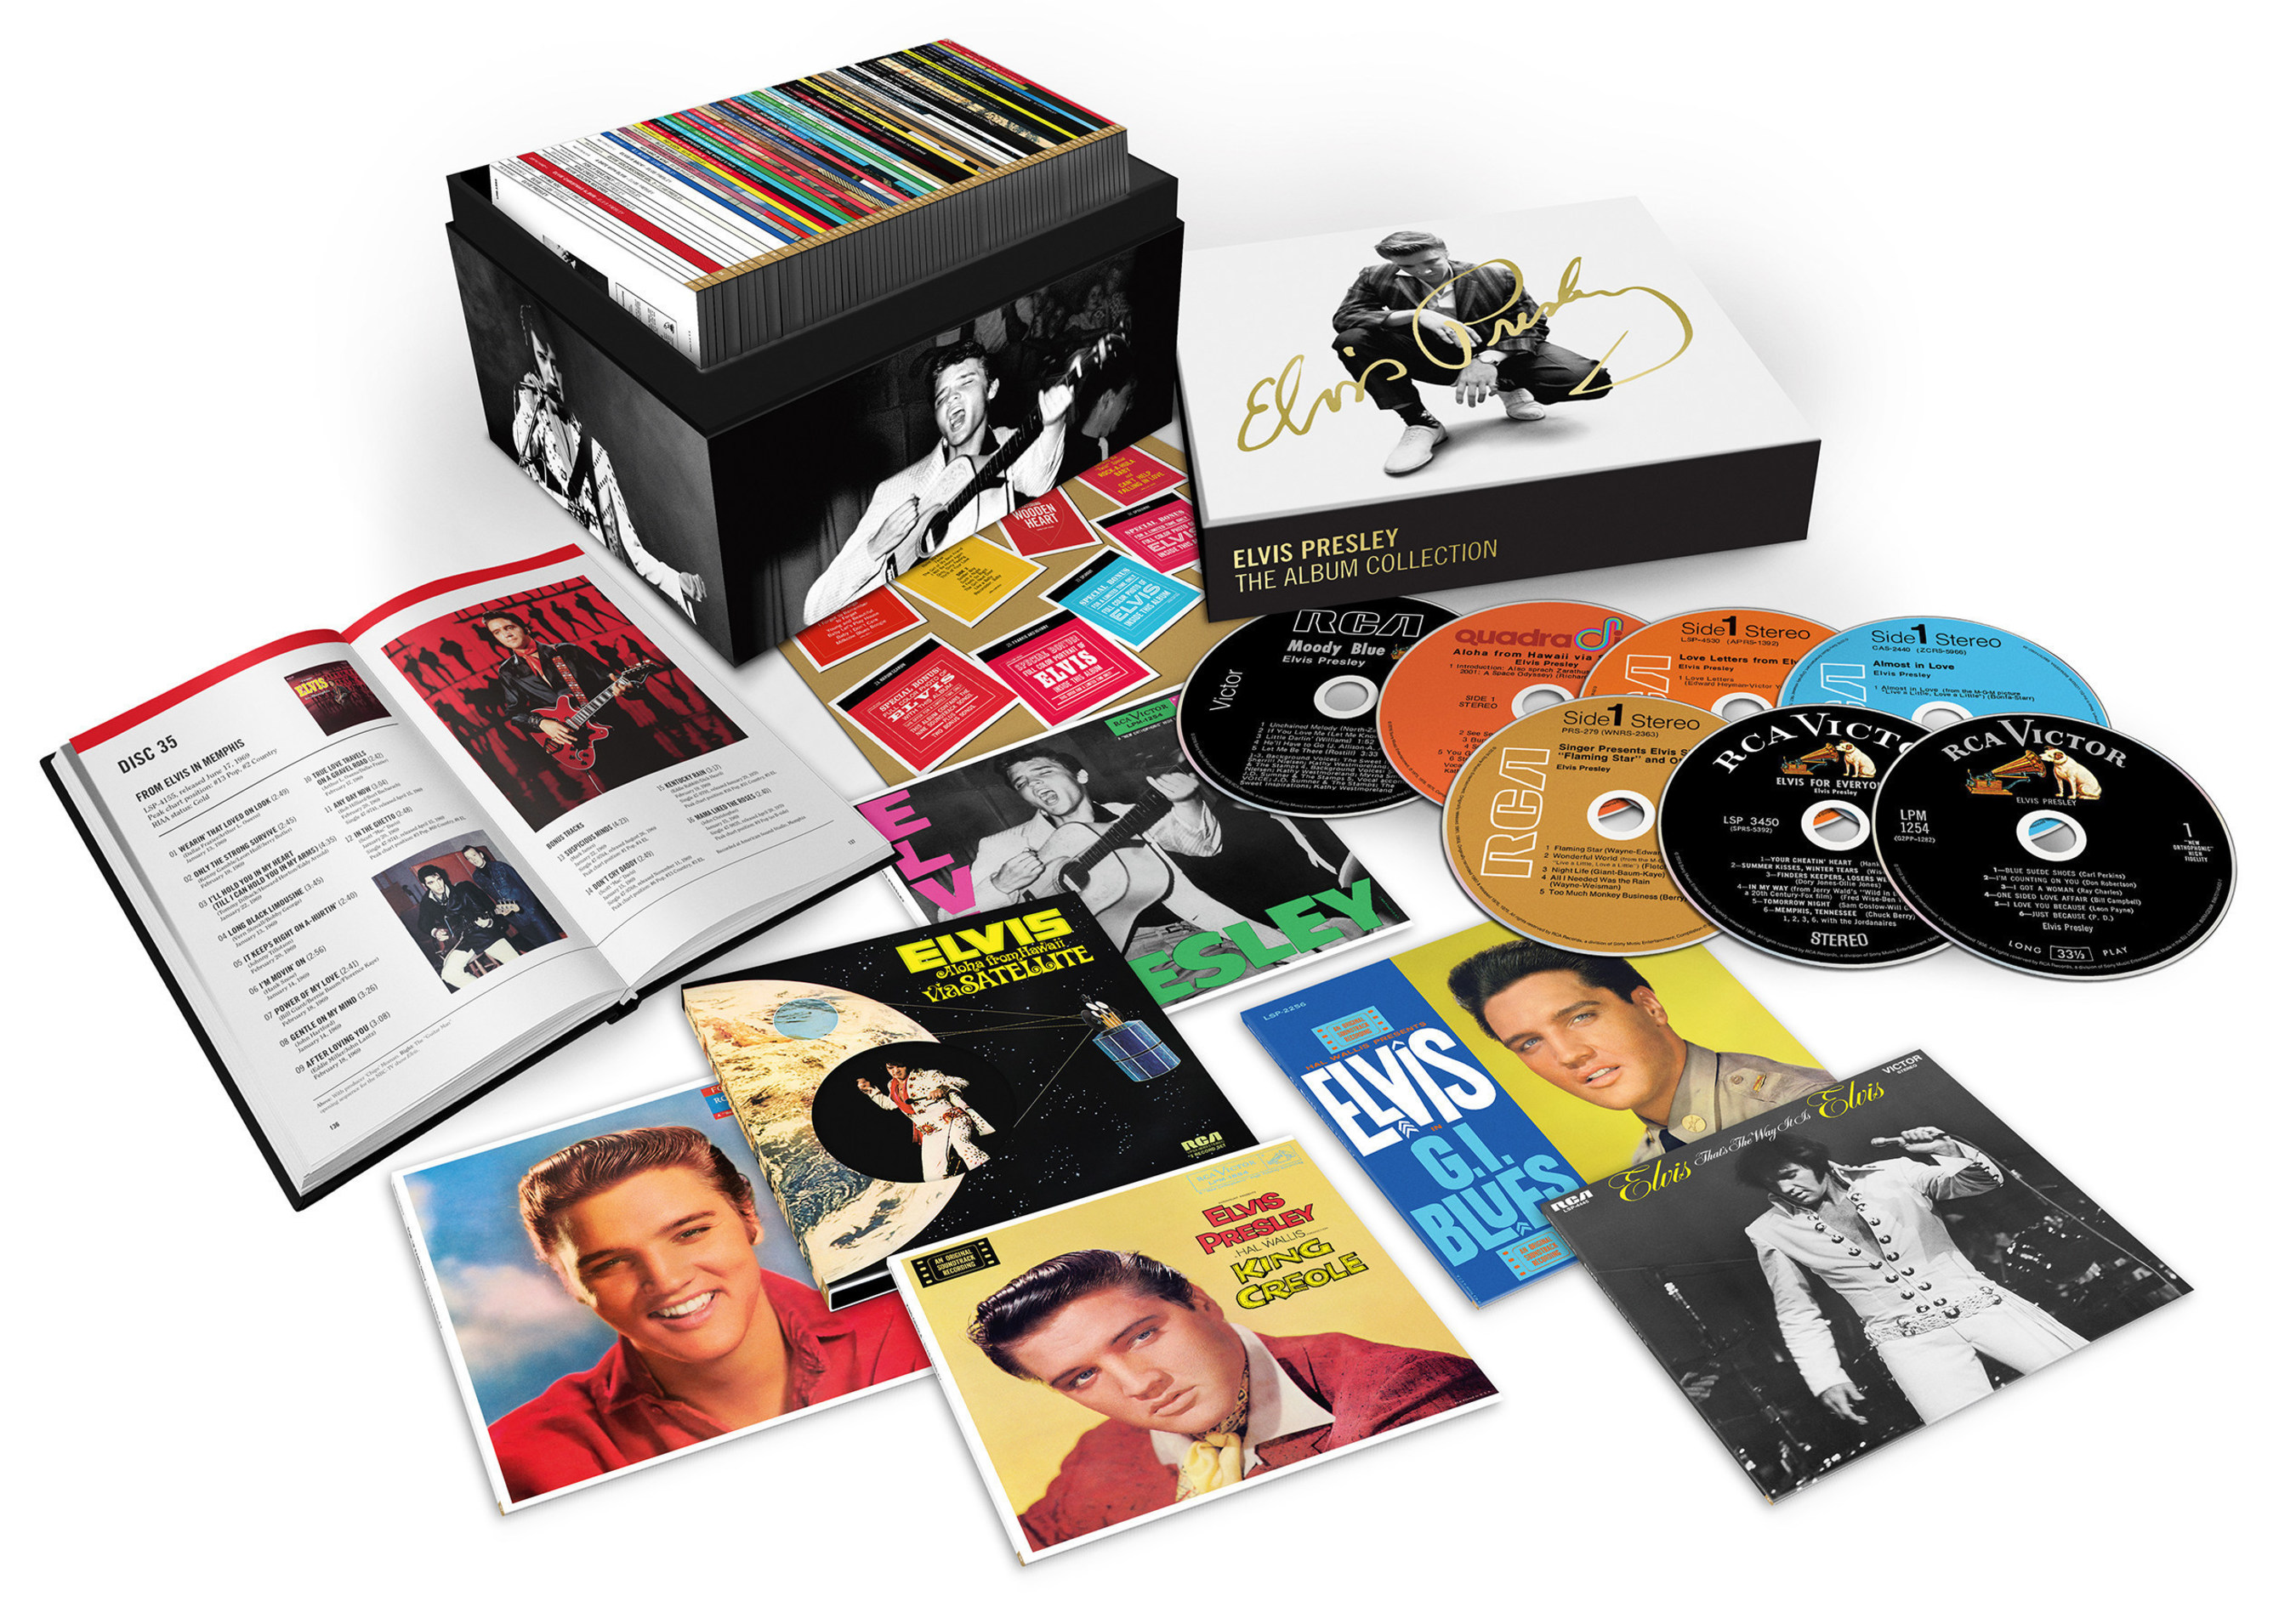 RCA/Legacy Recordings Set to Release ELVIS PRESLEY - THE ALBUM COLLECTION, the Definitive 60CD Deluxe LIMITED EDITION Box Set, on Friday, March 18, 2016